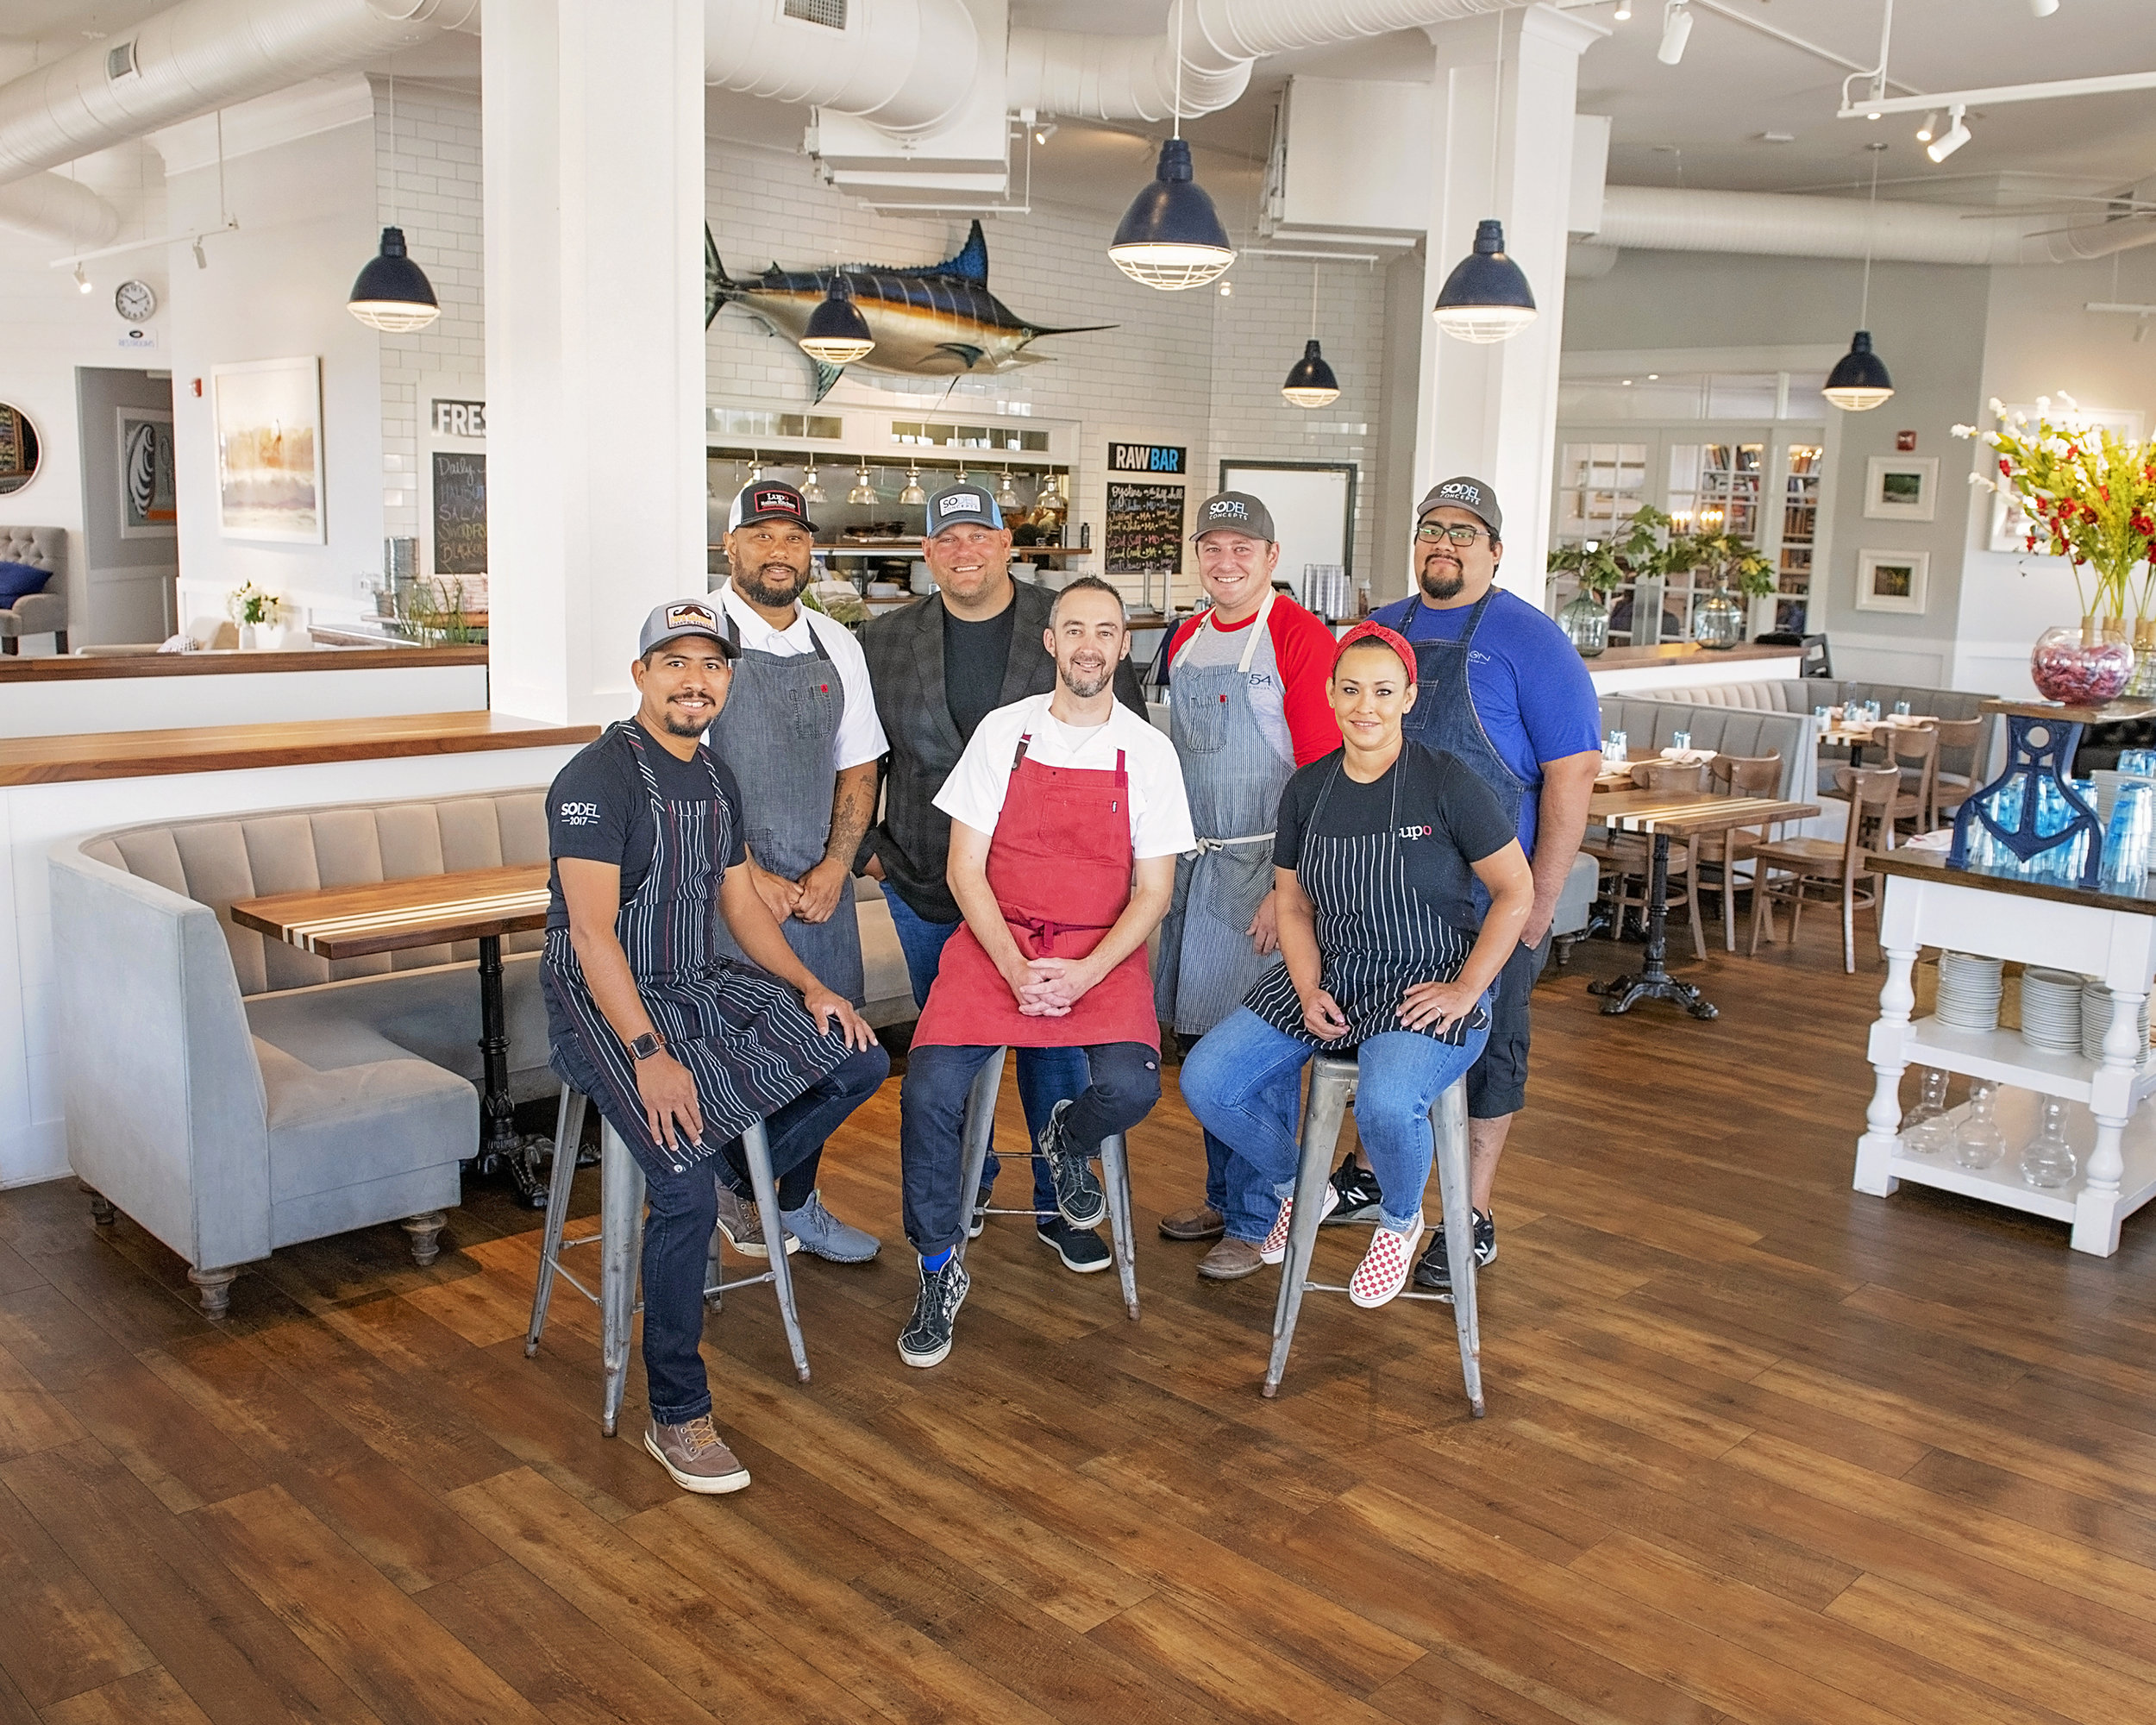 Chris Parks (center), a SoDel Concepts employee since 2014, was recently promoted to the position of corporate chef.Here, he is surrounded by SoDel Concepts teammates. From left to right: Chef Efrain Martinez; Maurice Catlett, corporate chef; Scott Kammerer, president; Ronnie Burkle, corporate chef; Chef Raul Rodriguez; and Chef Nina Maddox.